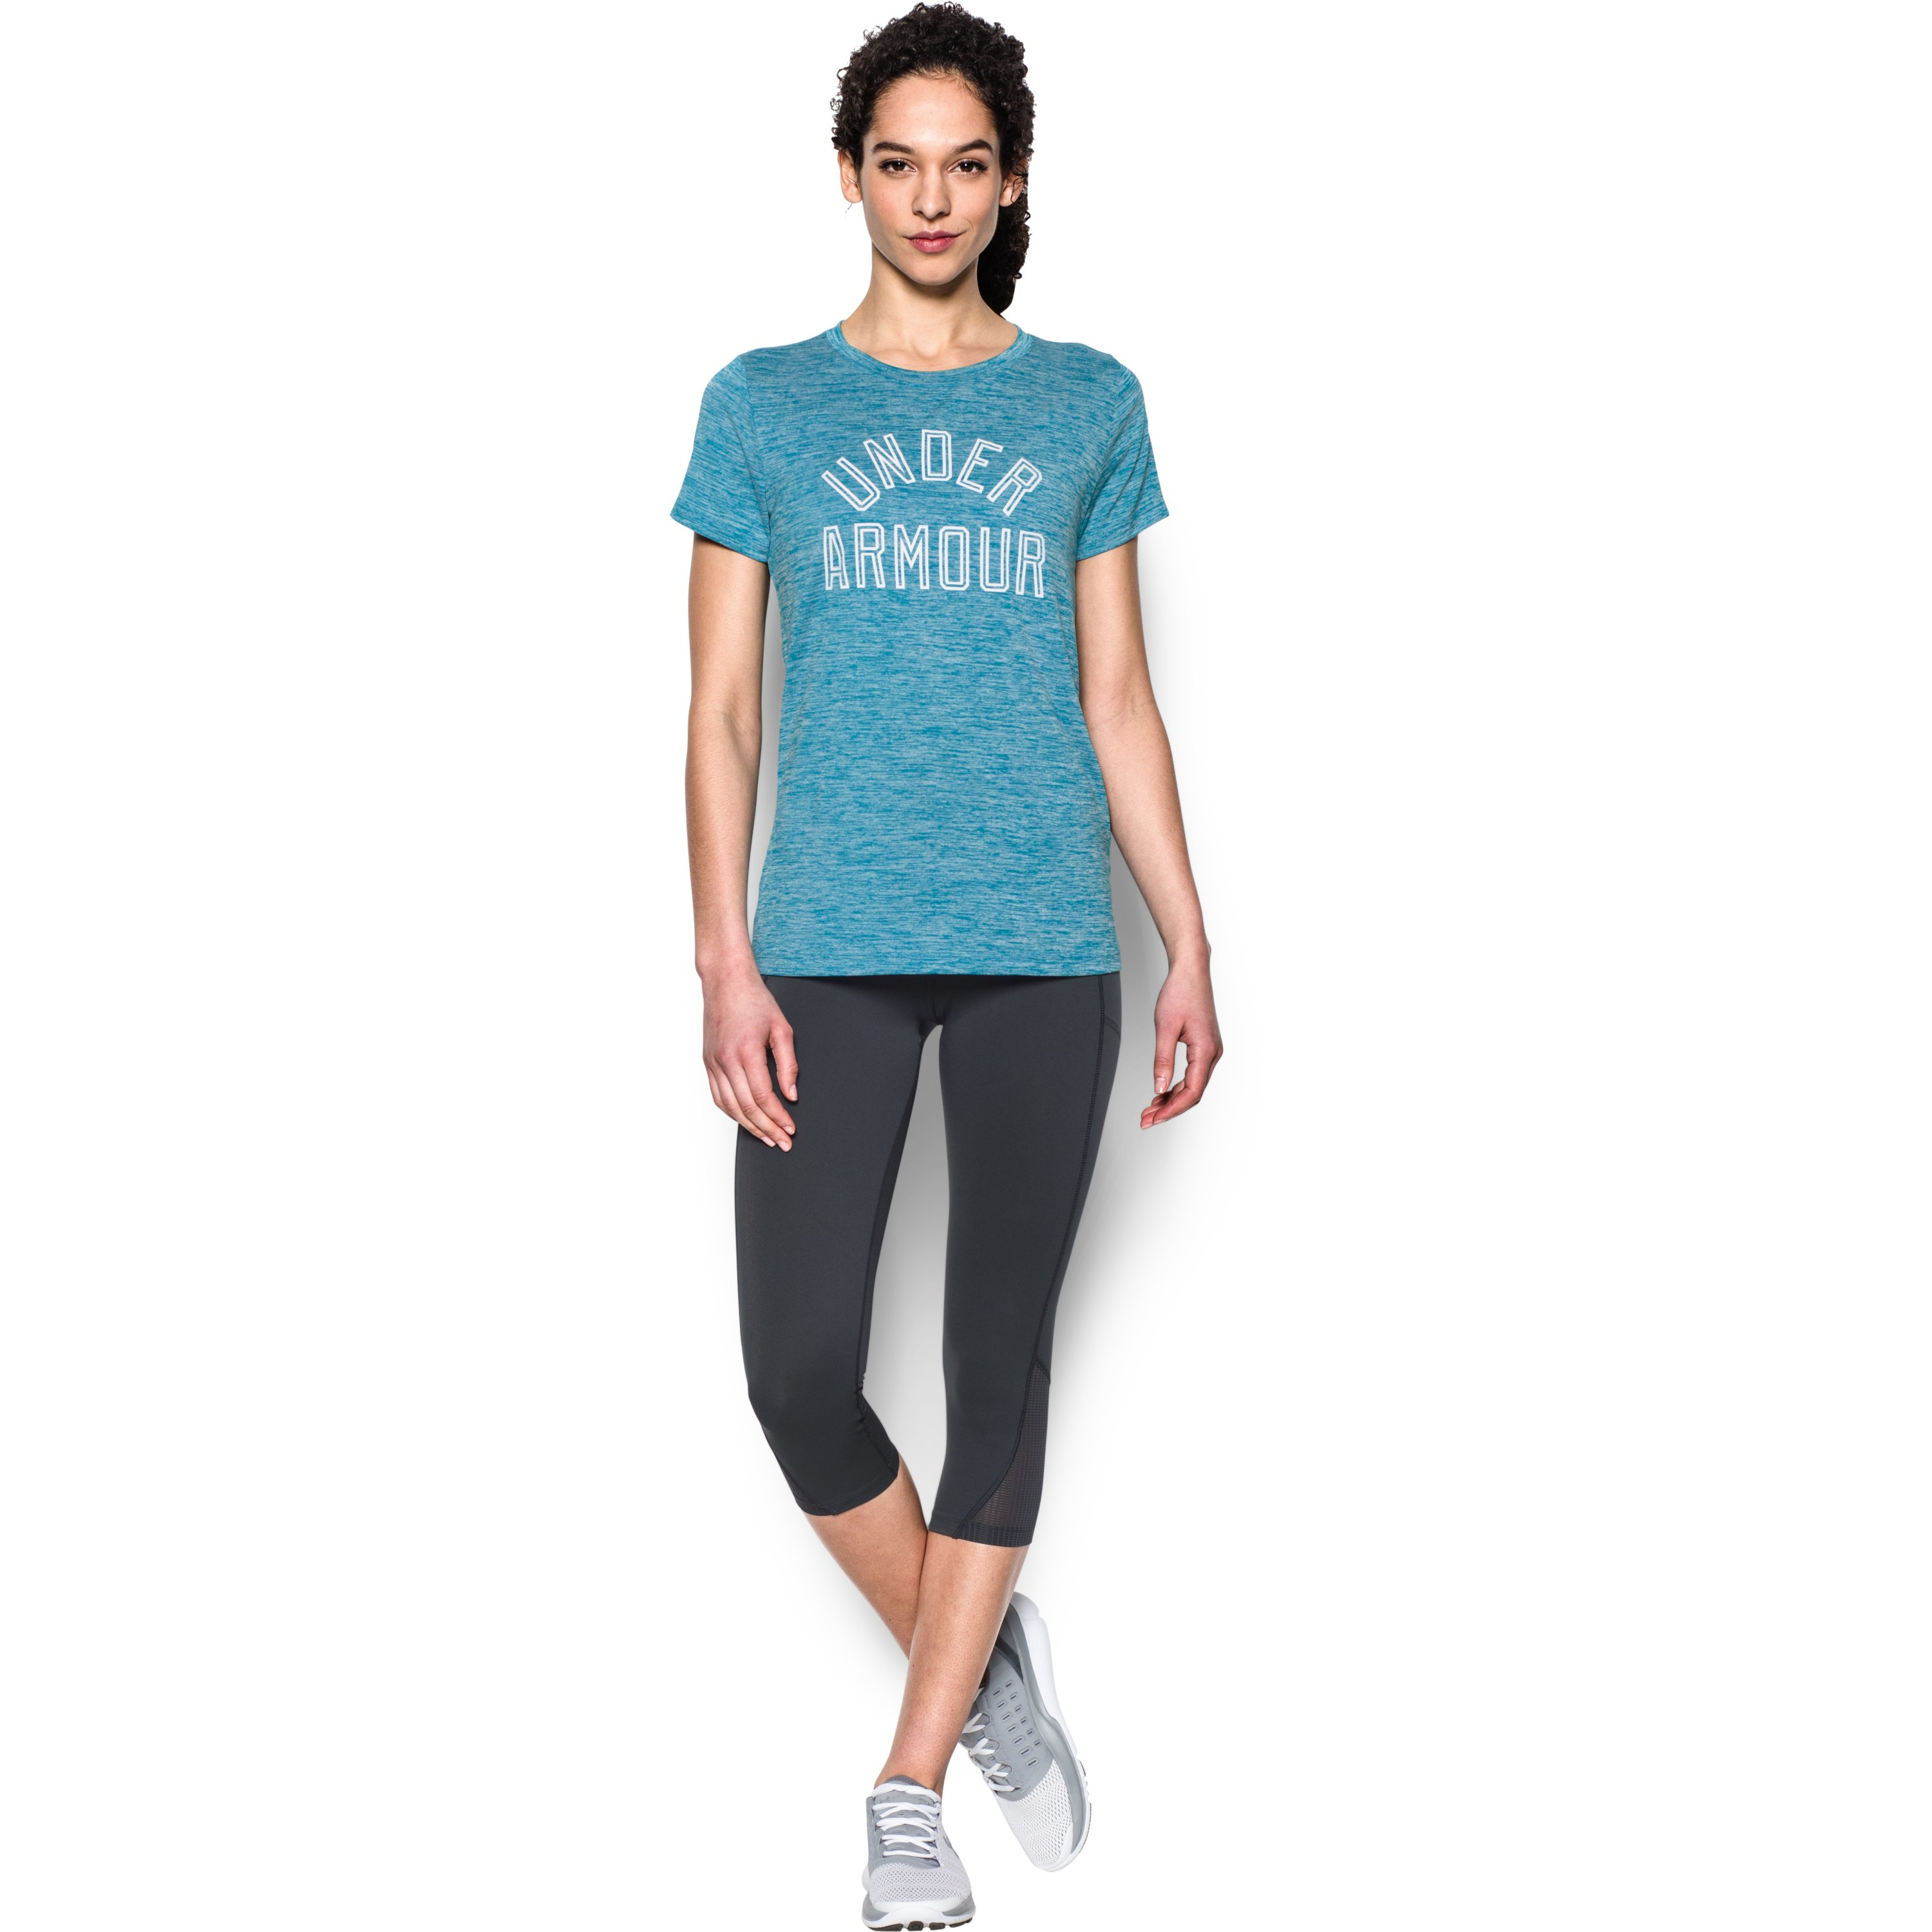 Under Armour Women S Ua Tech T Shirt Twist Graphic In